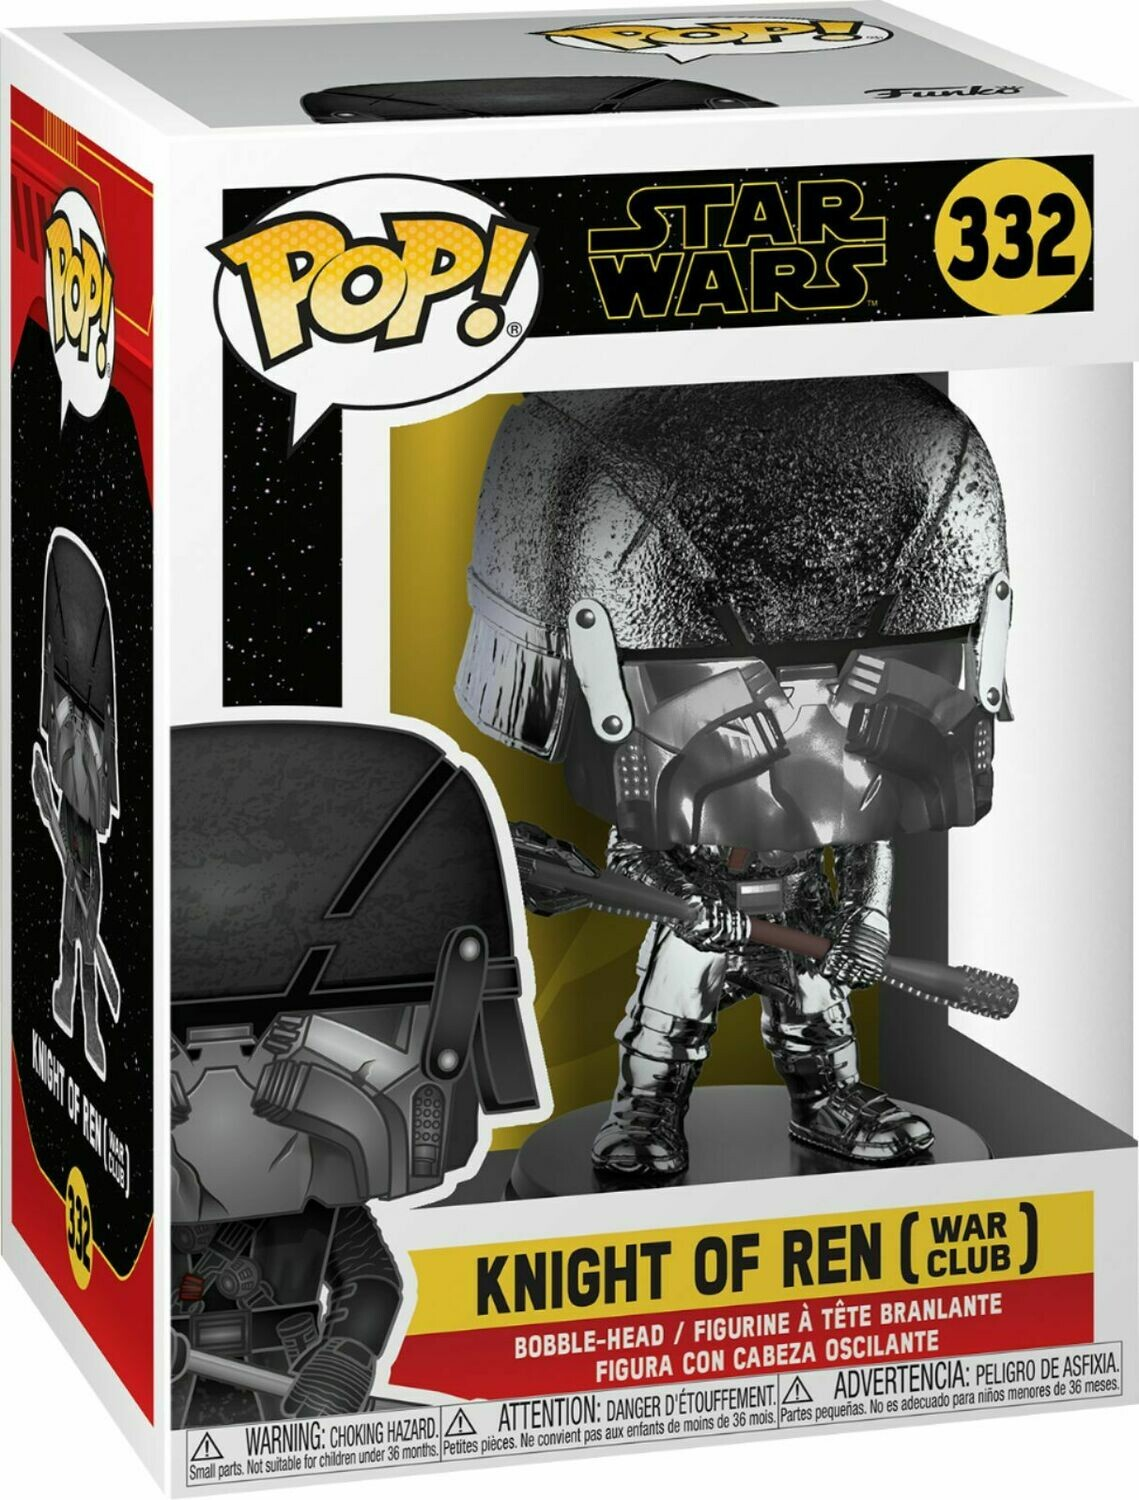 Knight Of Ren War Club